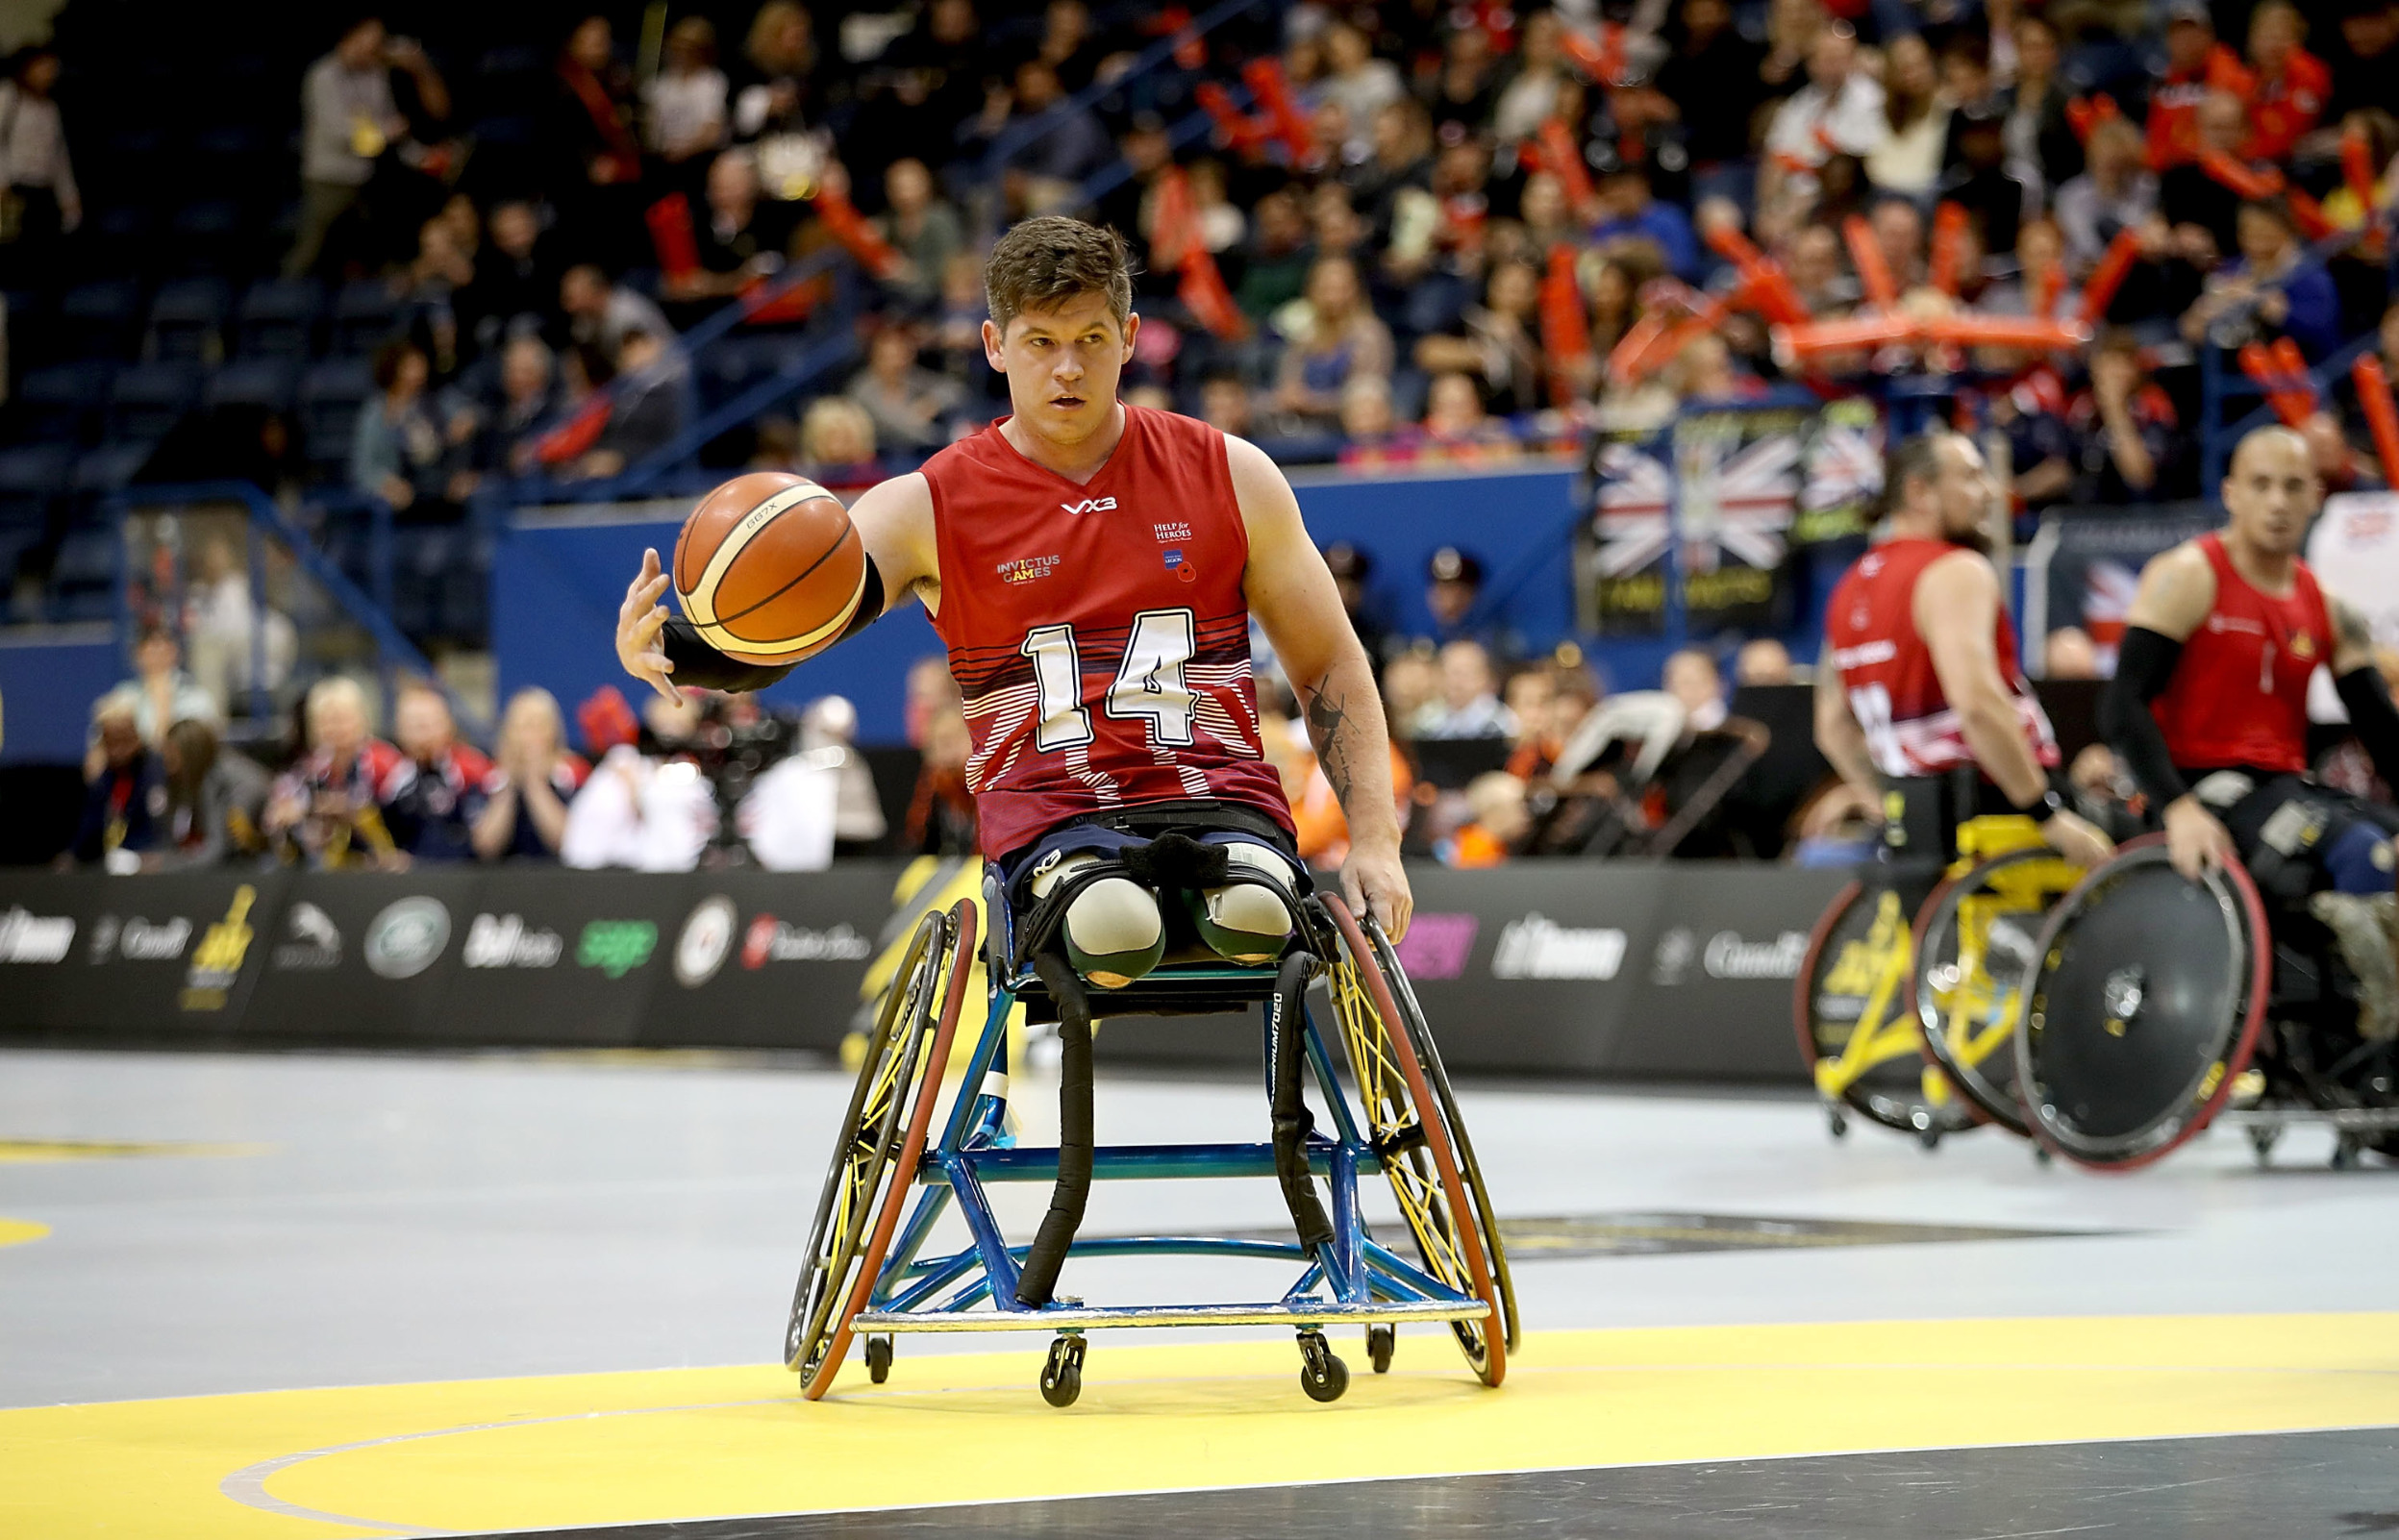 The UK team compete against Denmark in the Wheelchair Basketball Finals during the Invictus Games 2017 at Mattamy Athletic Centre on September 30, 2017 in Toronto, Canada. Invictus Games, Toronto, Canada - 30 Sep 2017,Image: 351053348, License: Rights-managed, Restrictions: , Model Release: no, Credit line: - / Shutterstock Editorial / Profimedia